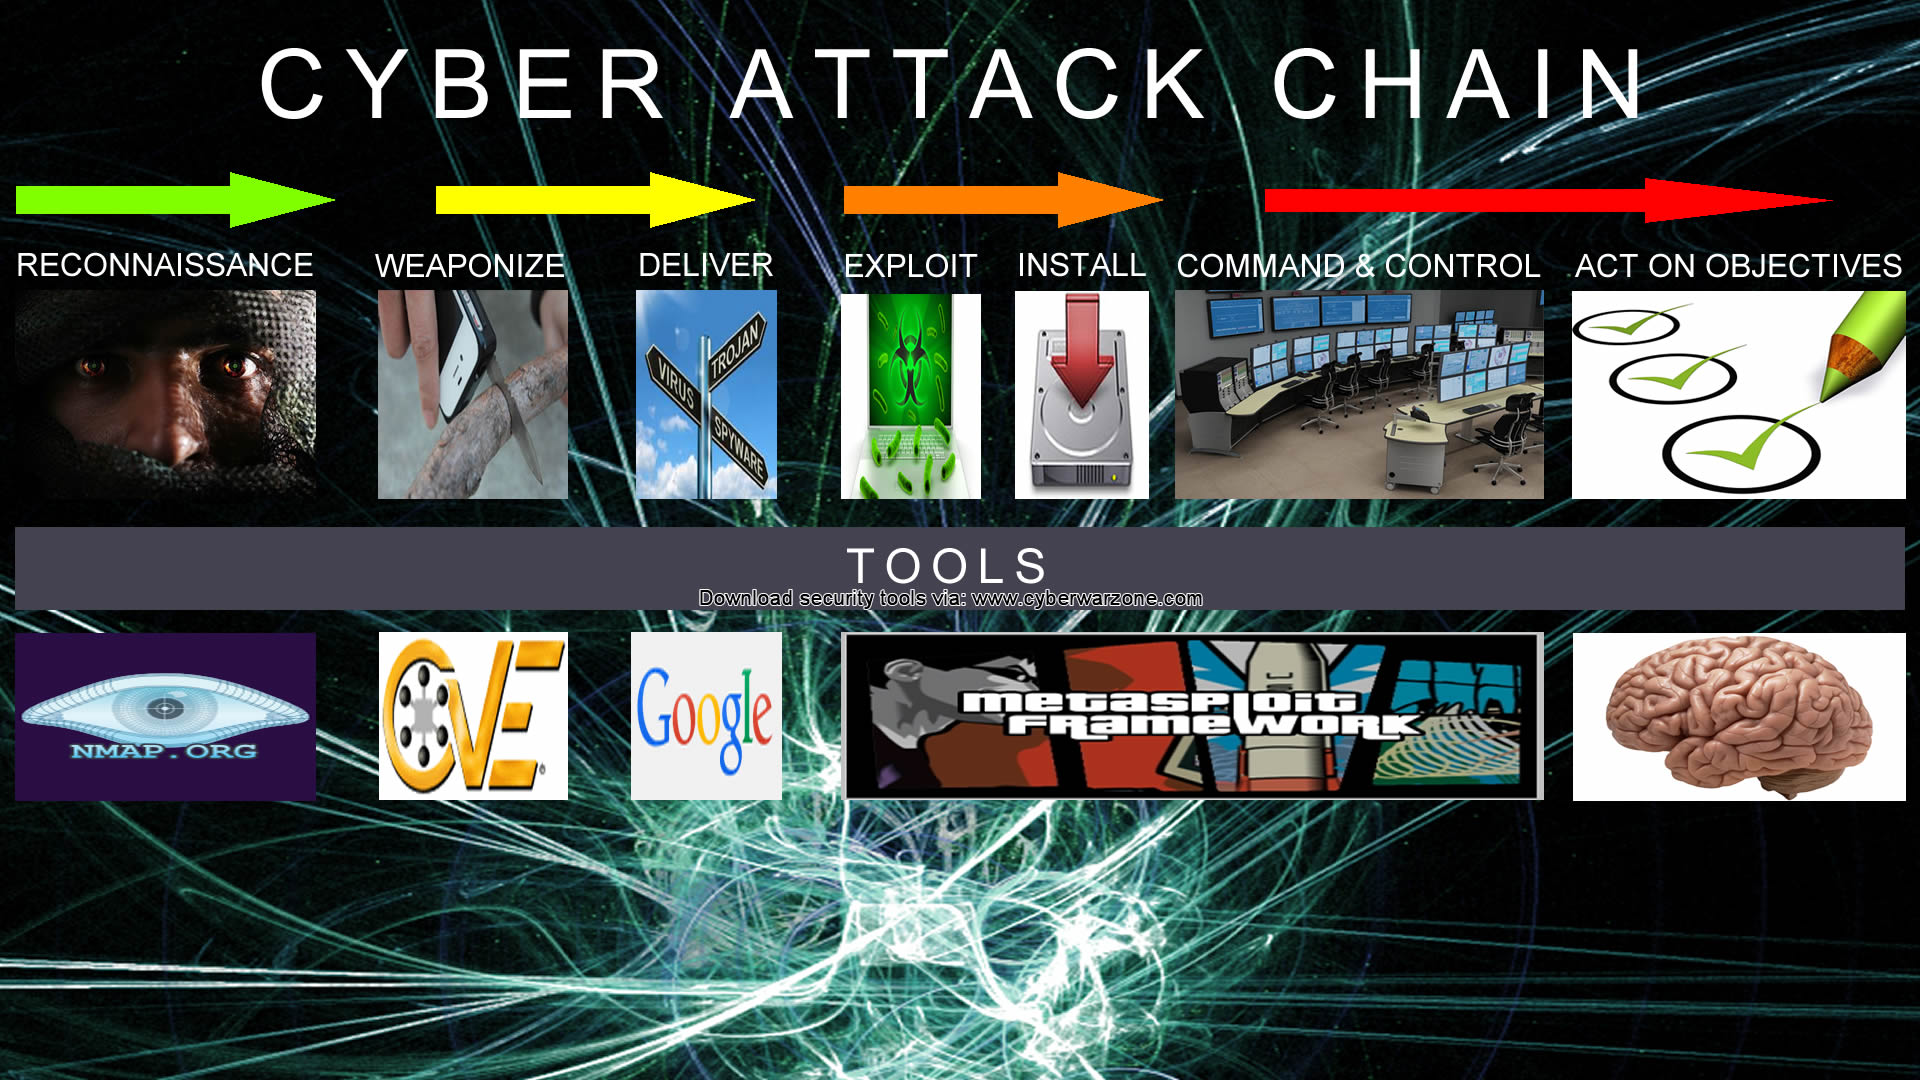 8 Steps to perform a successful cyber-attack | Cyberwarzone